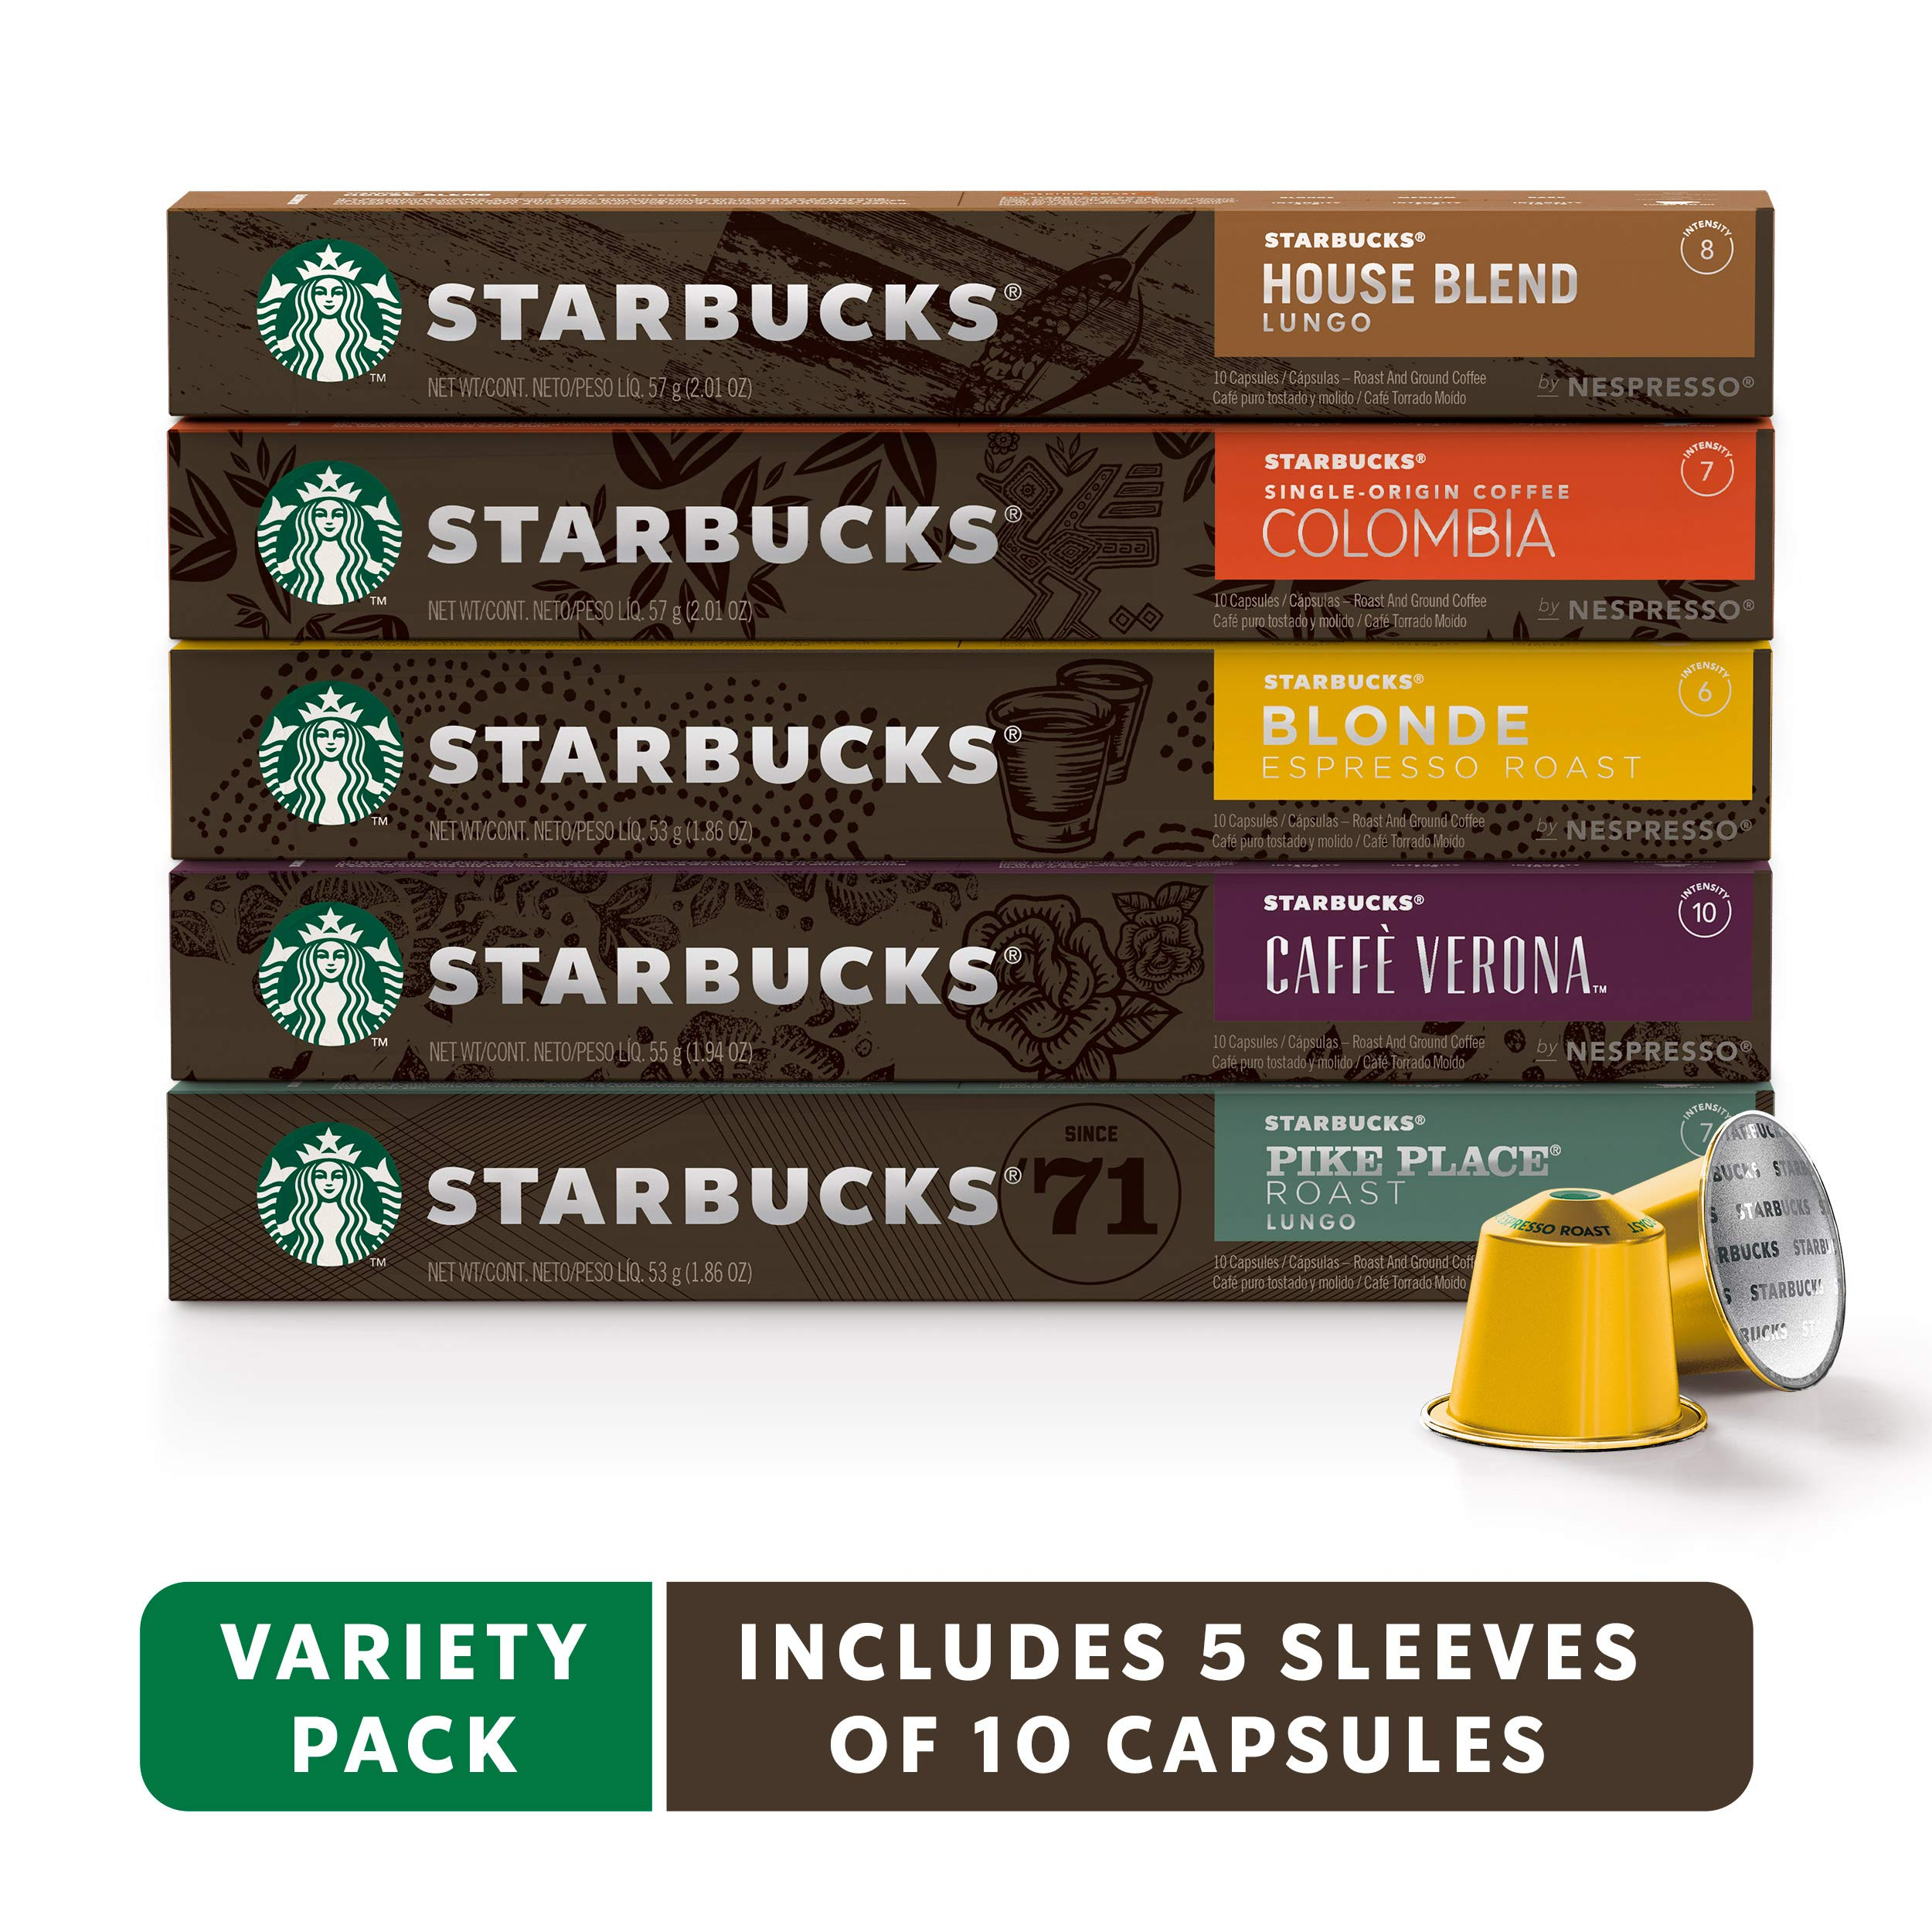 Starbucks by Nespresso, Favorites Variety Pack (50-count single serve capsules, 10 of each flavor, compatible with Nespresso Original Line System) by Starbucks by Nespresso